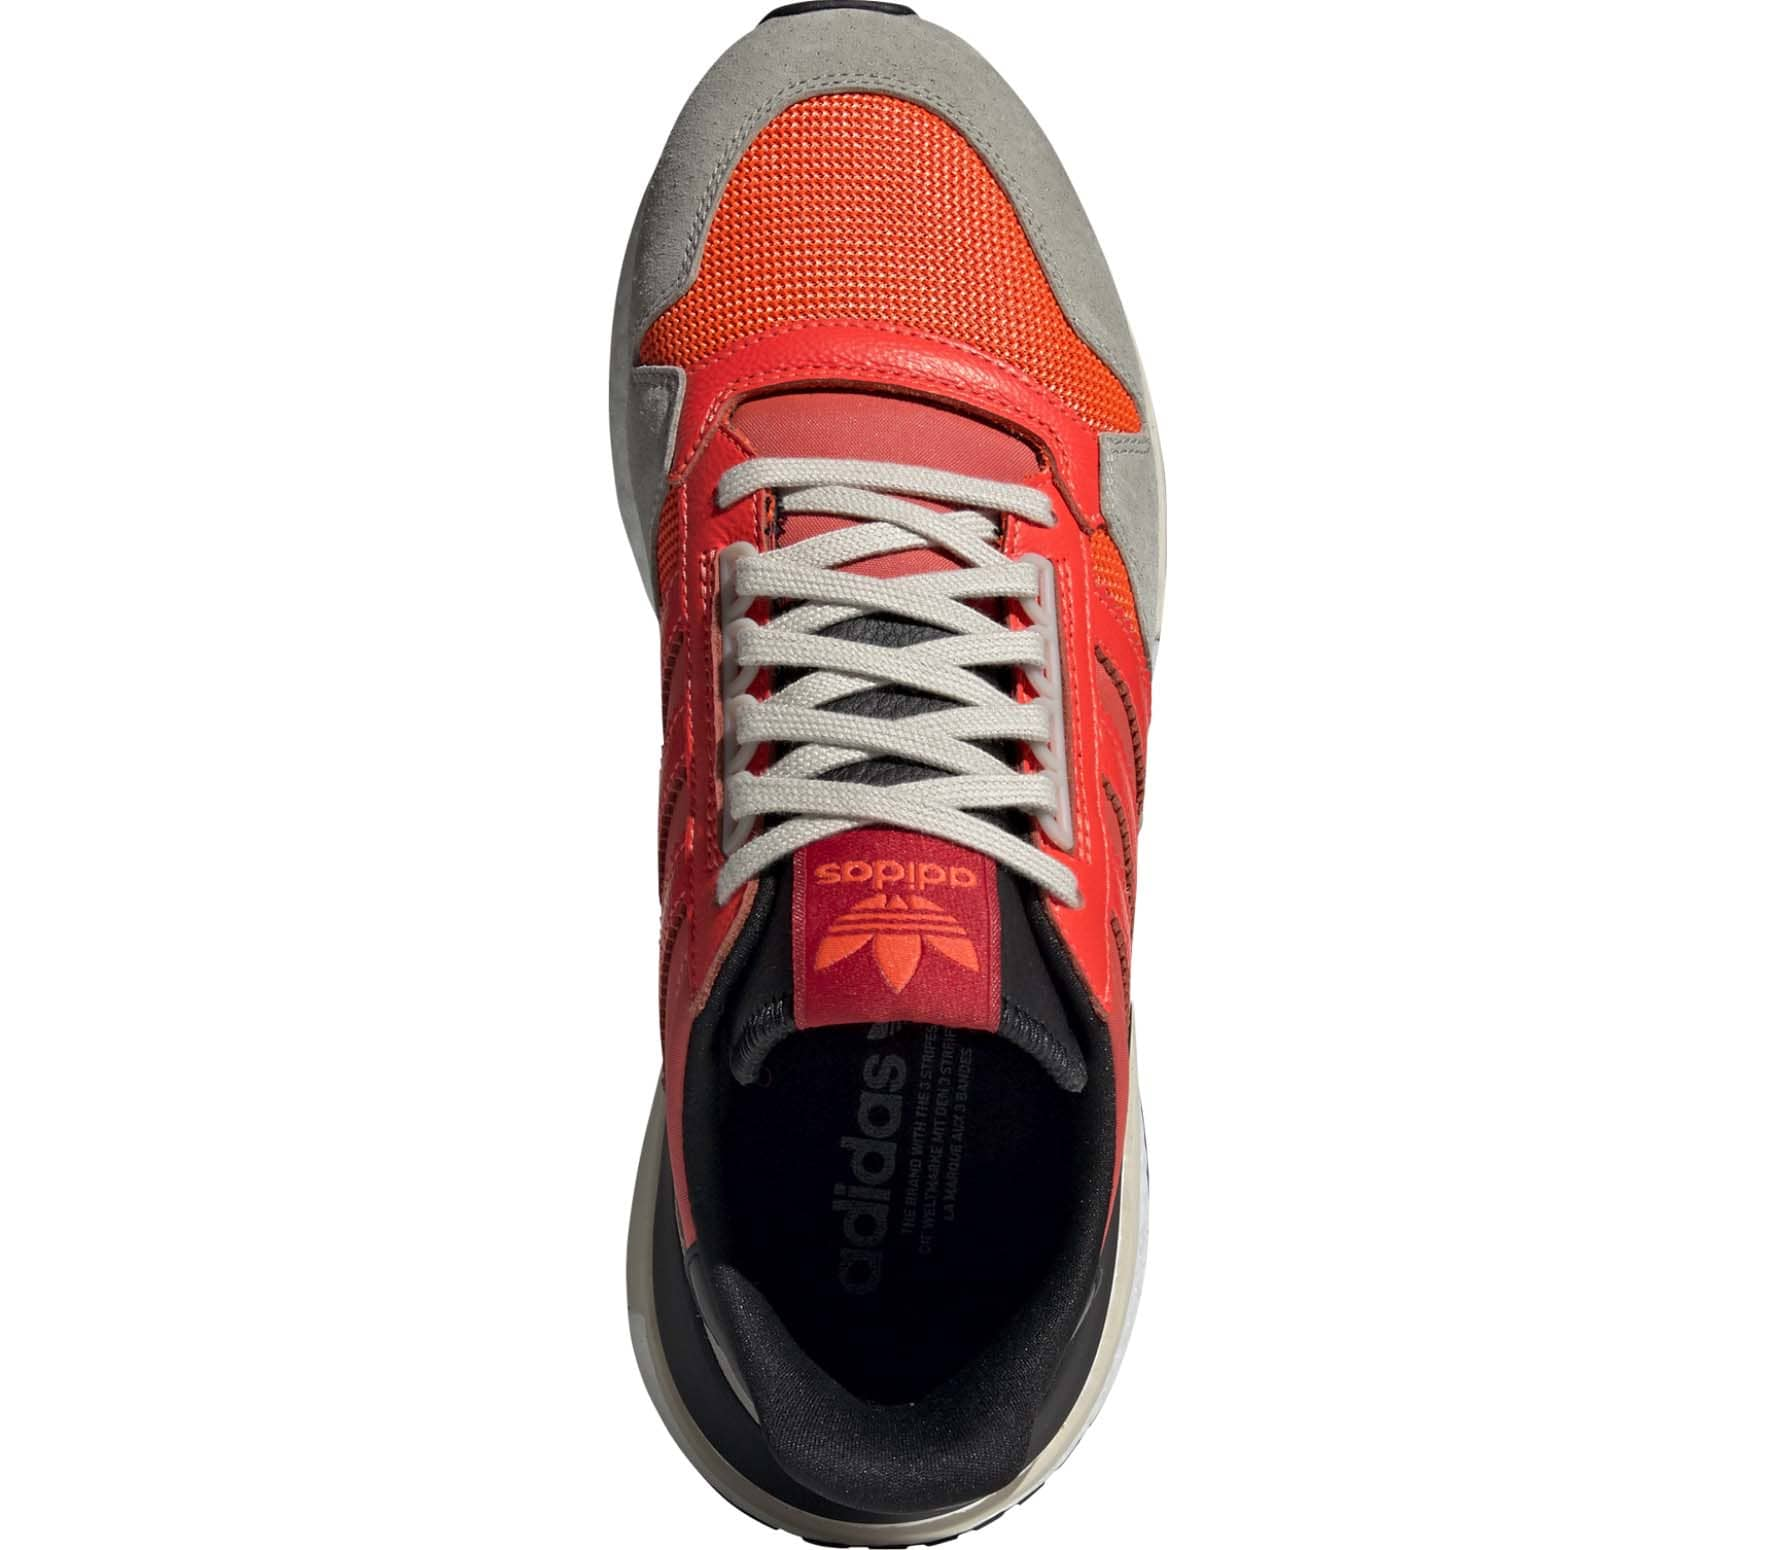 quality design 3a2d3 d01a1 adidas Originals ZX 500 RM Men Sneakers red